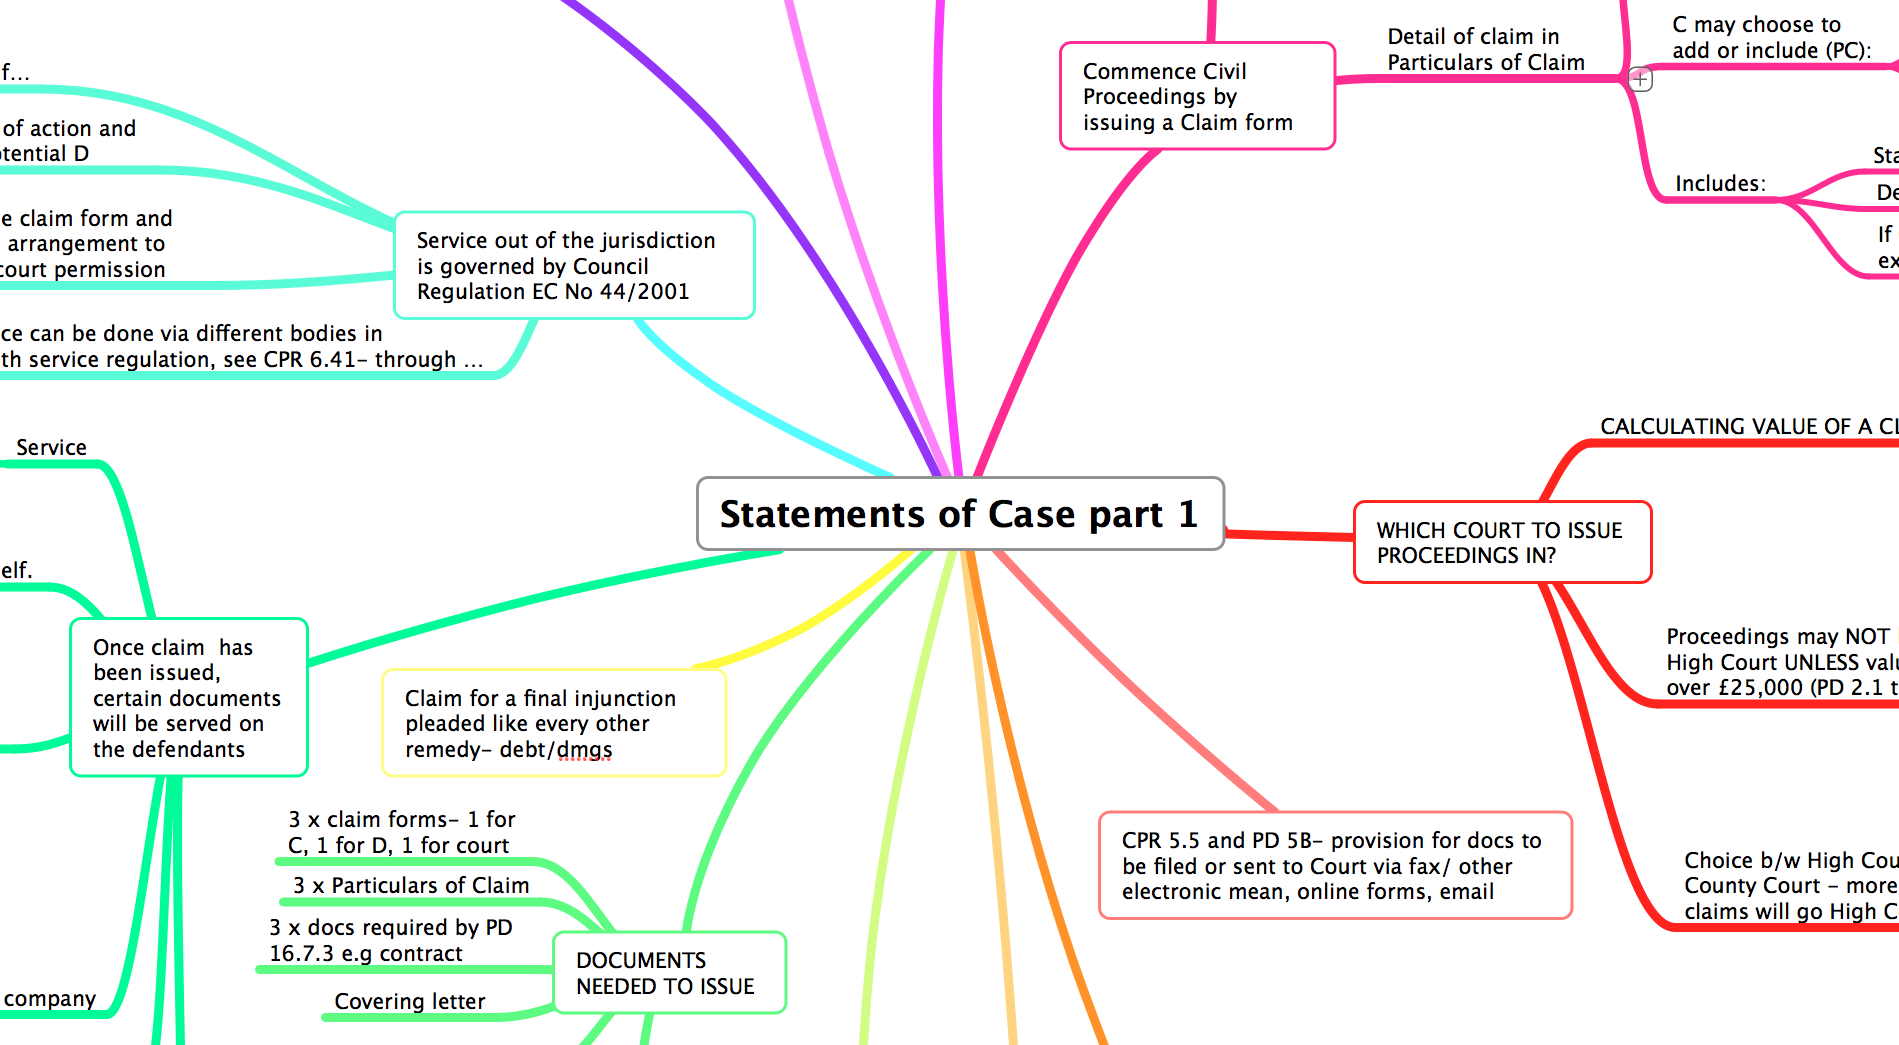 STATEMENTS OF CASE 1